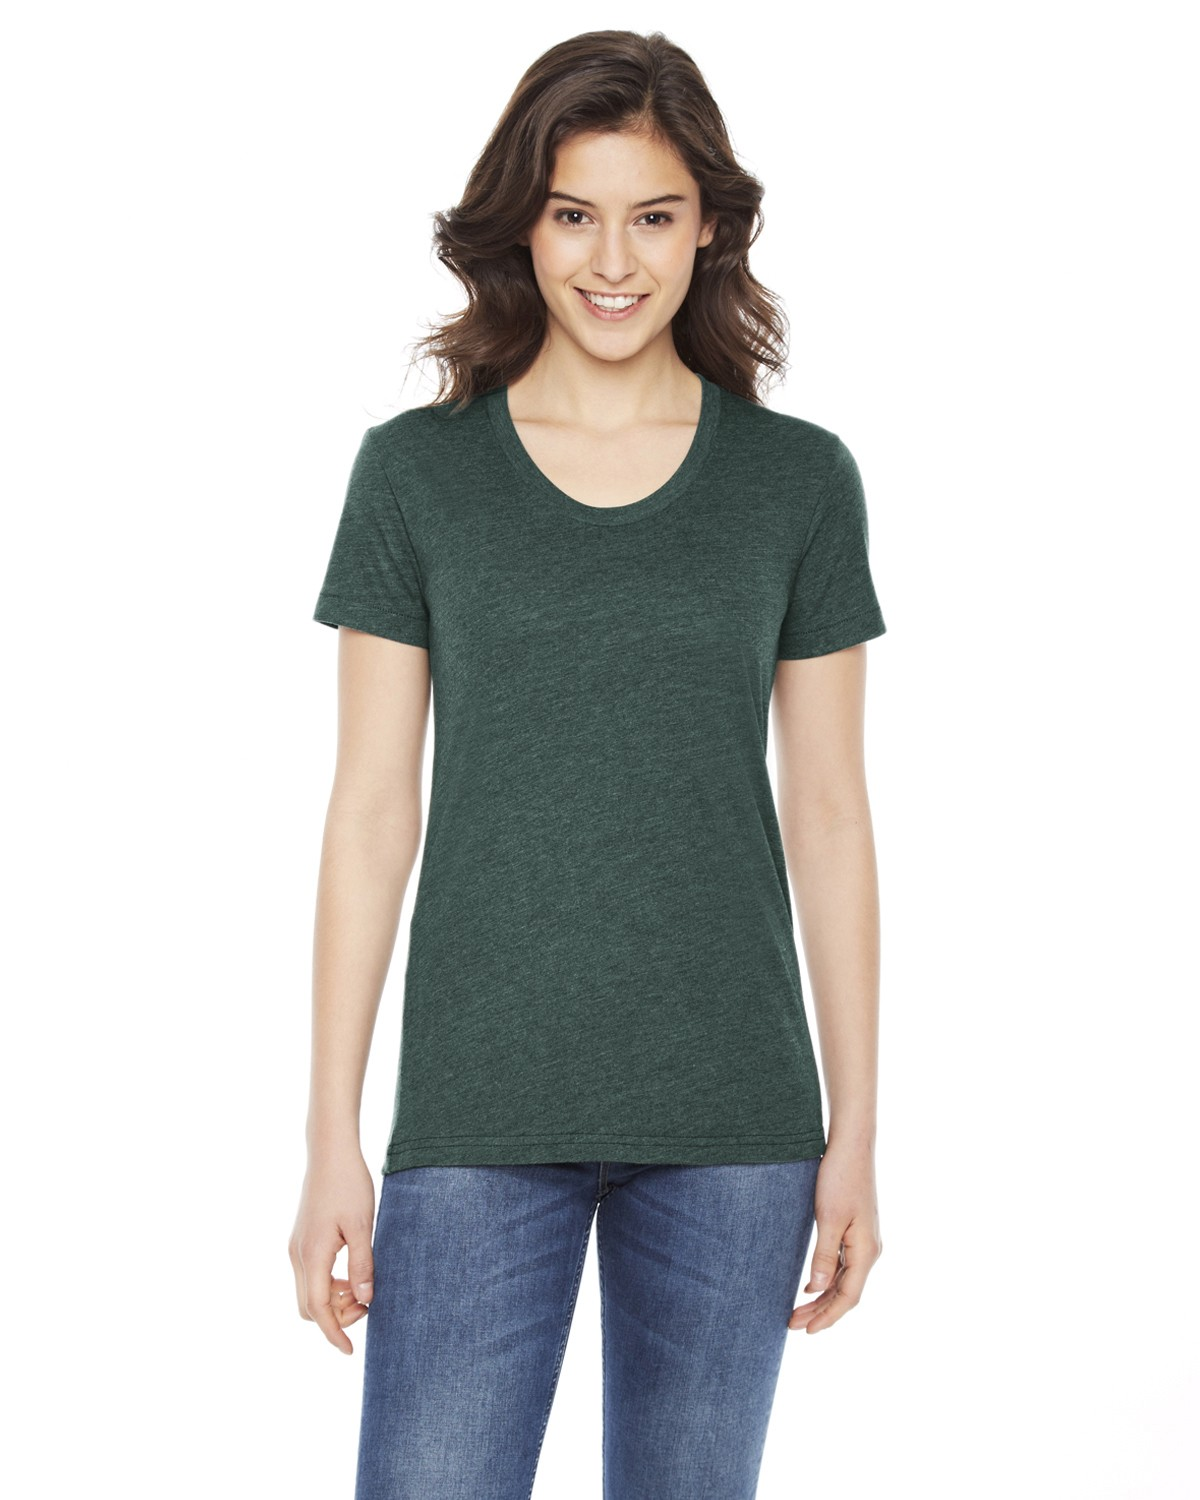 BB301W American Apparel HEATHER FOREST